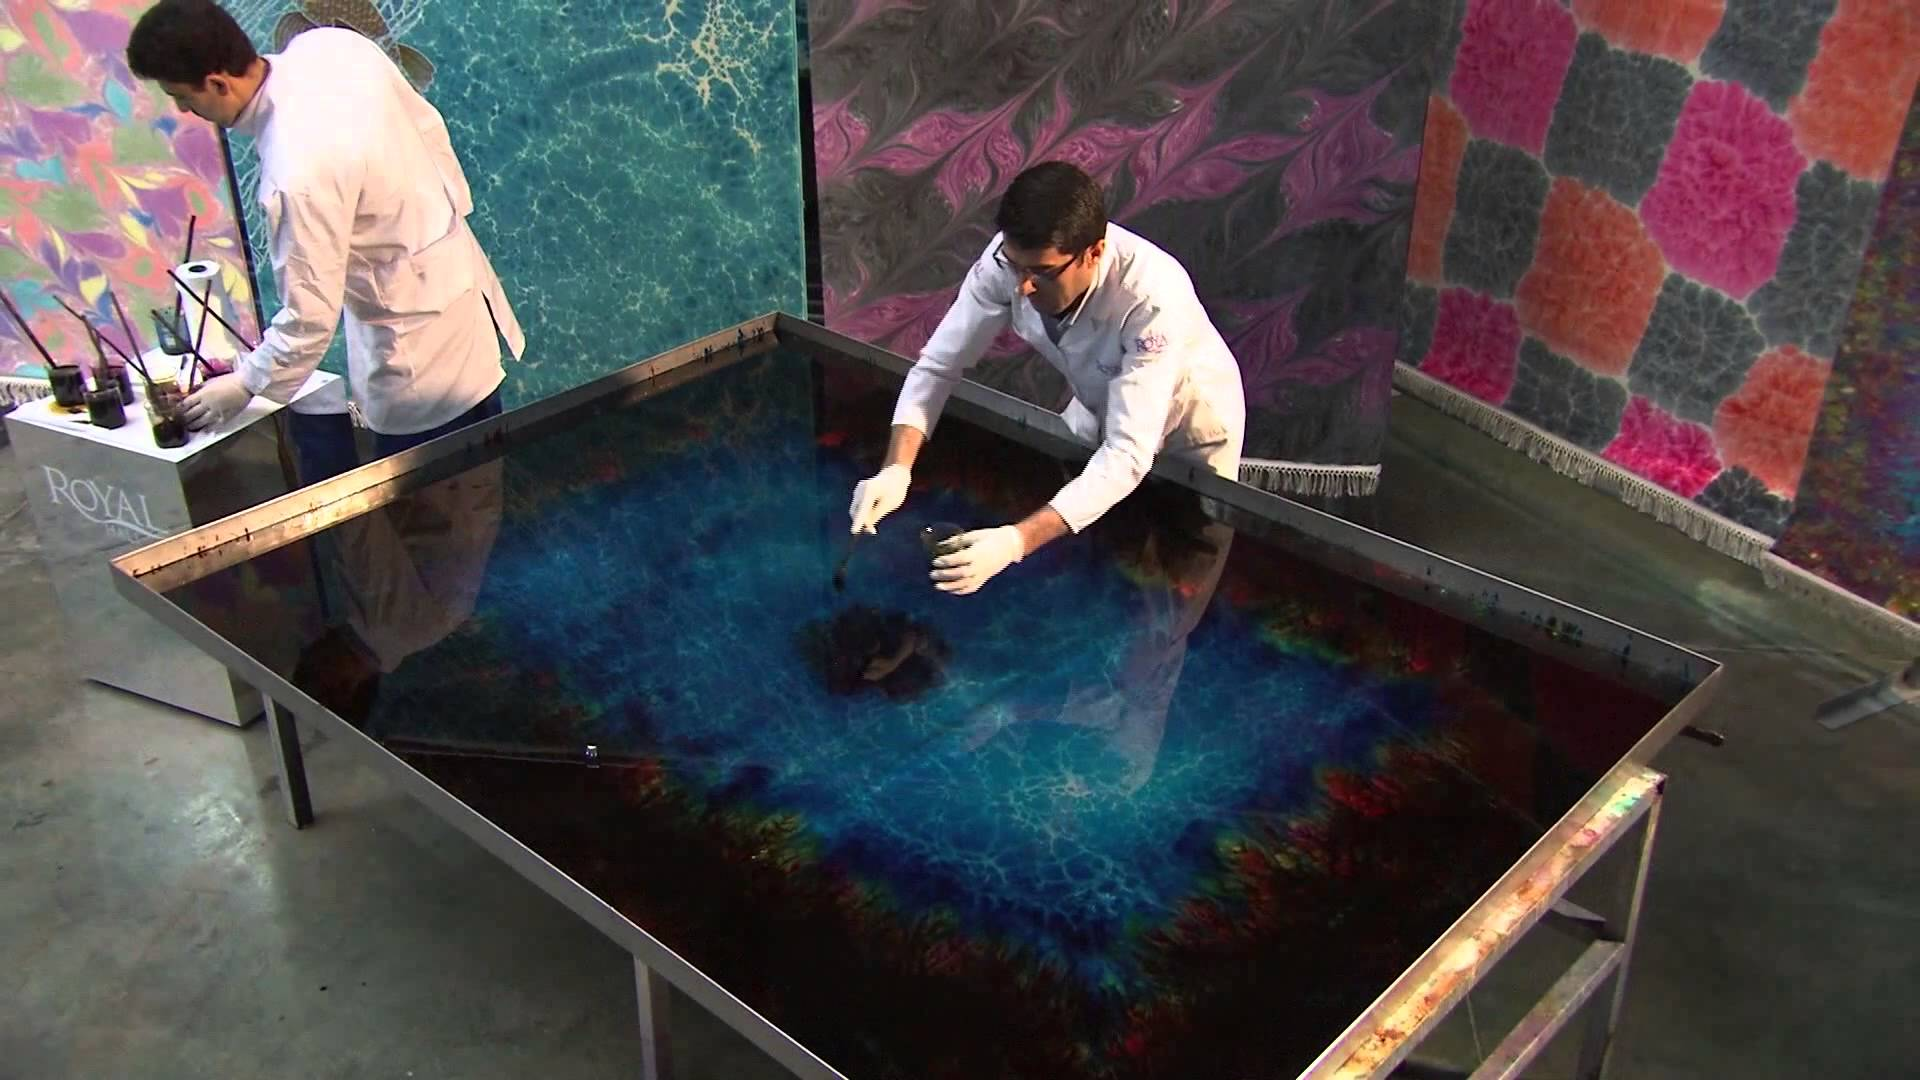 Stunning 3D painting of Under the Sea by Royal Ebru Hali